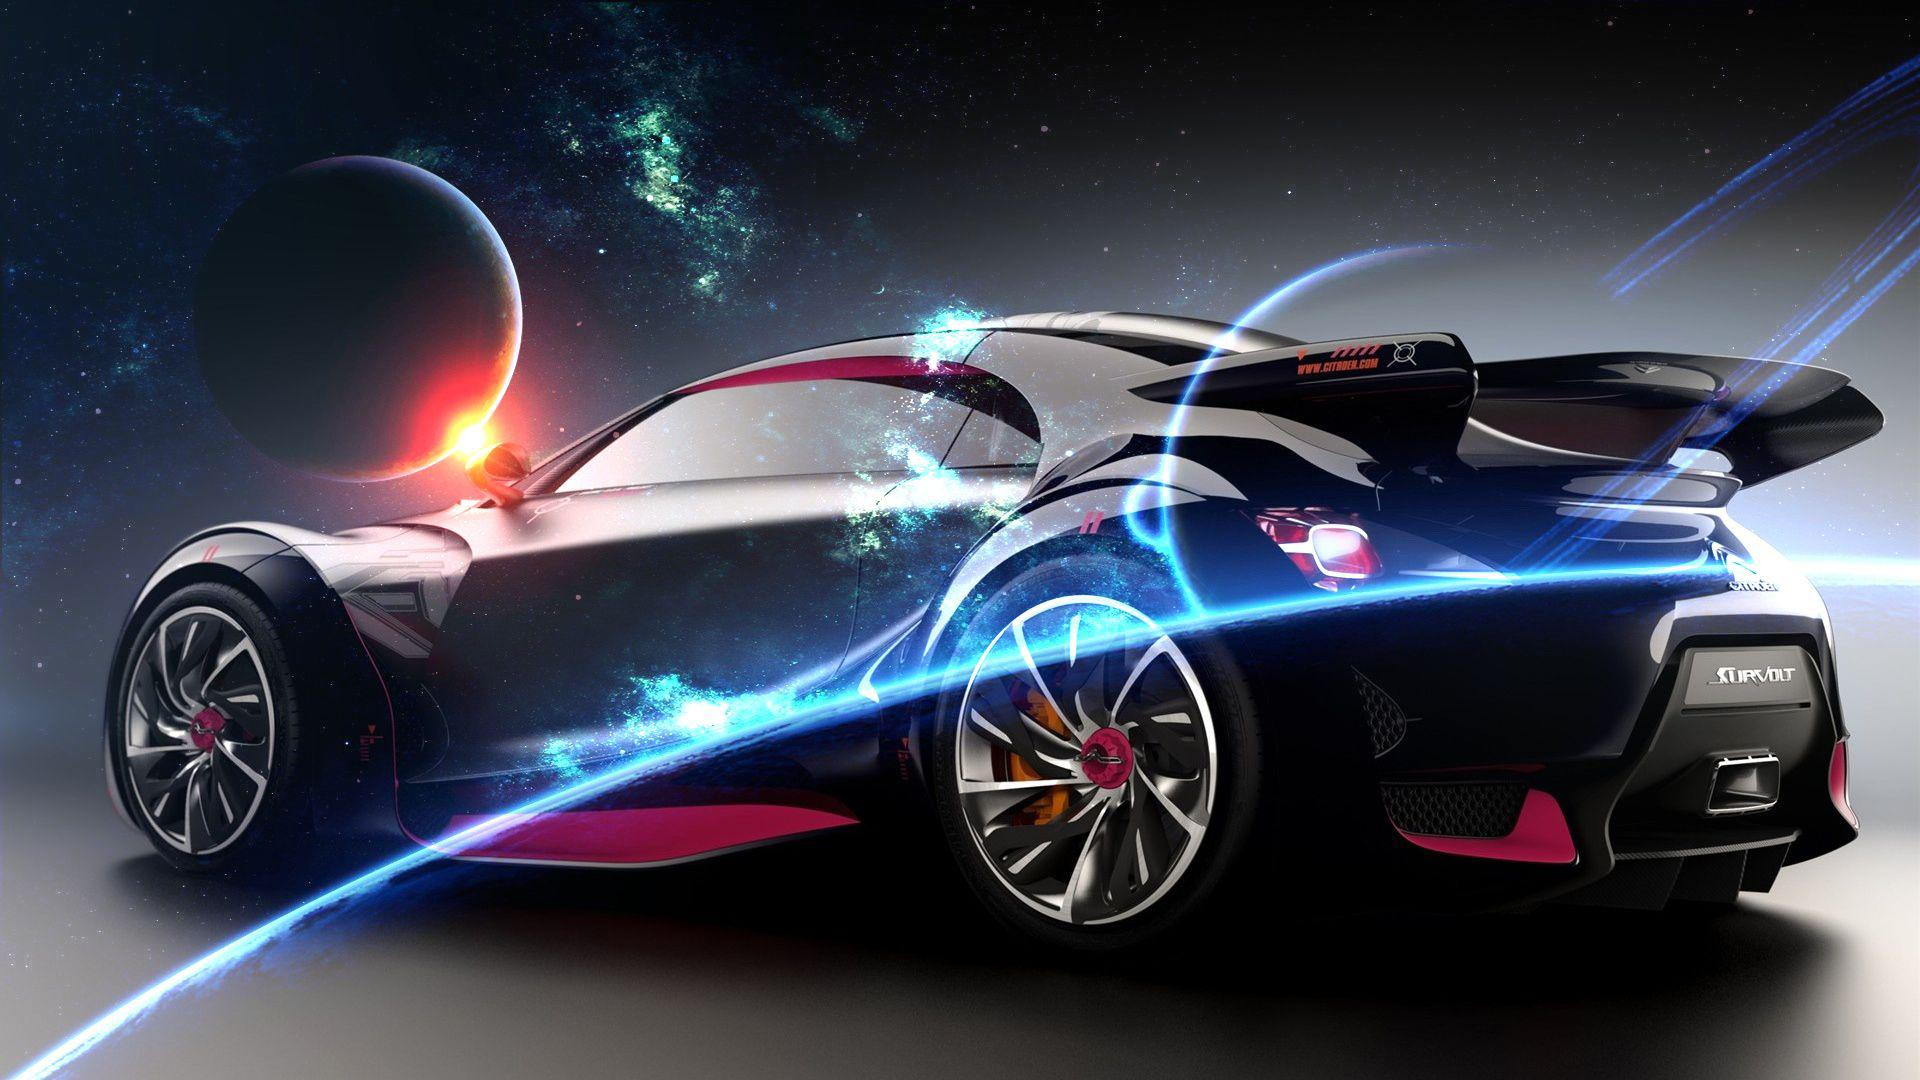 citroen-supercar-wallpapers-64924-6400547.jpg